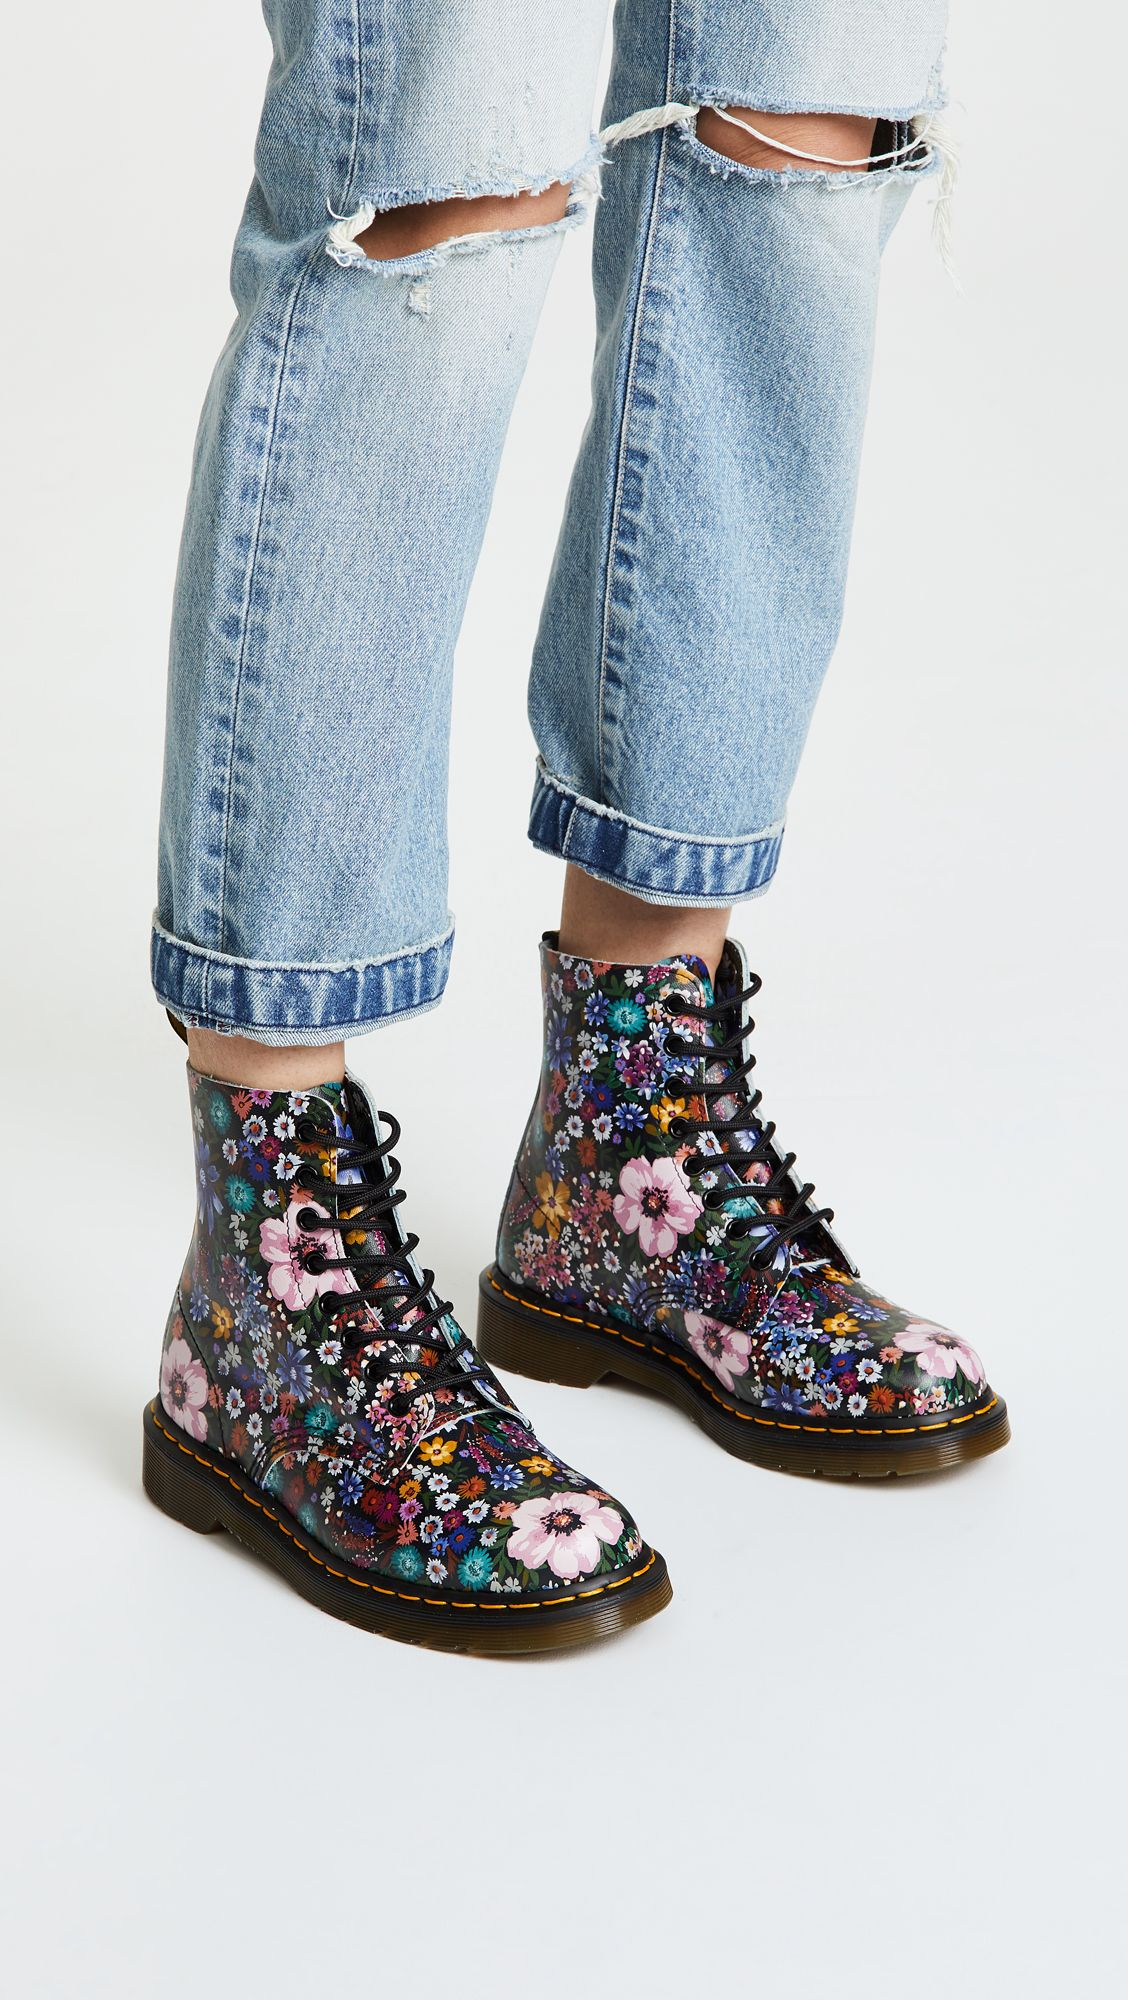 details for shades of lower price with Pascal WL 8 Eye Boots   Trend FW19: Floral   Boots, Combat ...